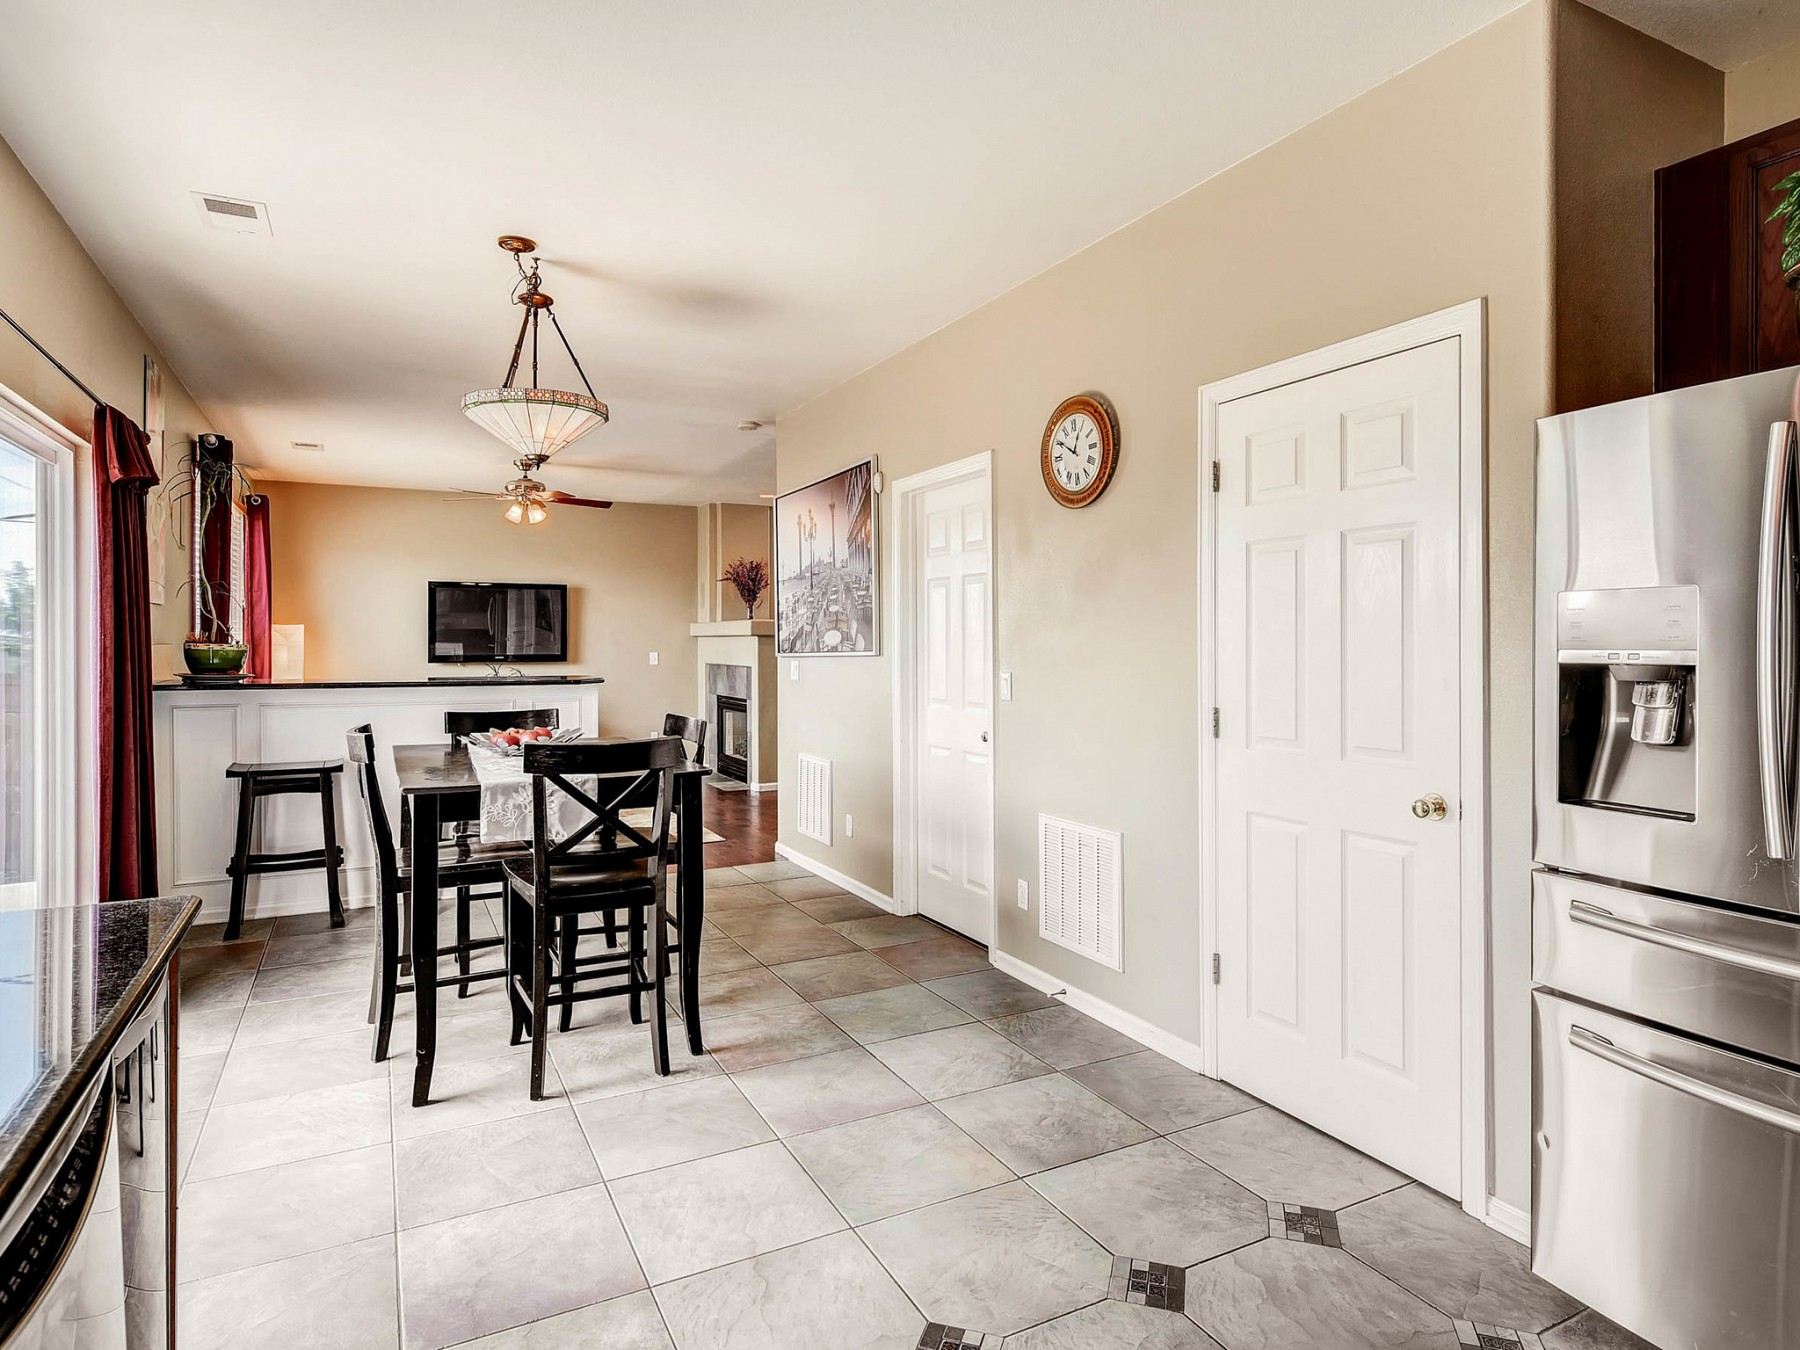 8456 South Pierce Way, Littleton, CO 80128